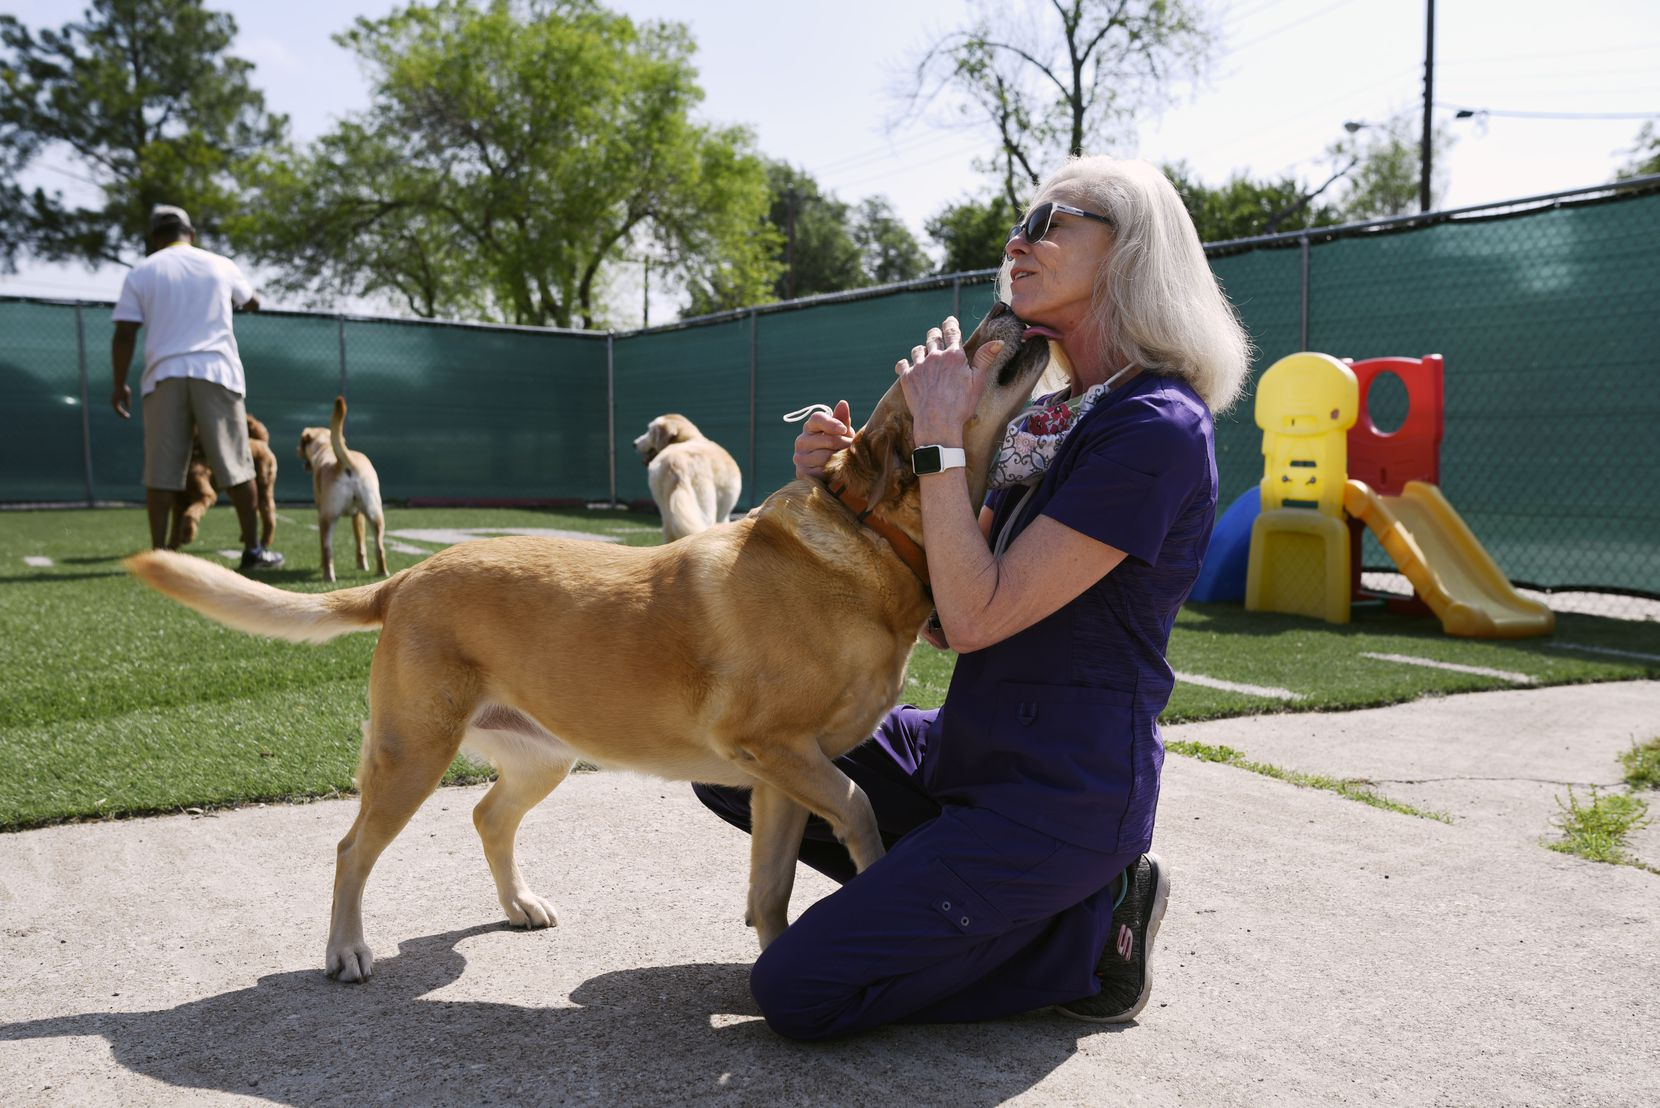 Tammy Godfrey, owner of PawTenders, was greeted by a dog named Bella as she visited with her clients at the boutique dog day care in Dallas on April 21. Godfrey's business has declined since the coronavirus outbreak. They are used to seeing 20 to 25 dogs a day but now average in the single digits. She also had to lay off a staff member who assisted in picking up dogs for day care. (Ben Torres/Special Contributor)